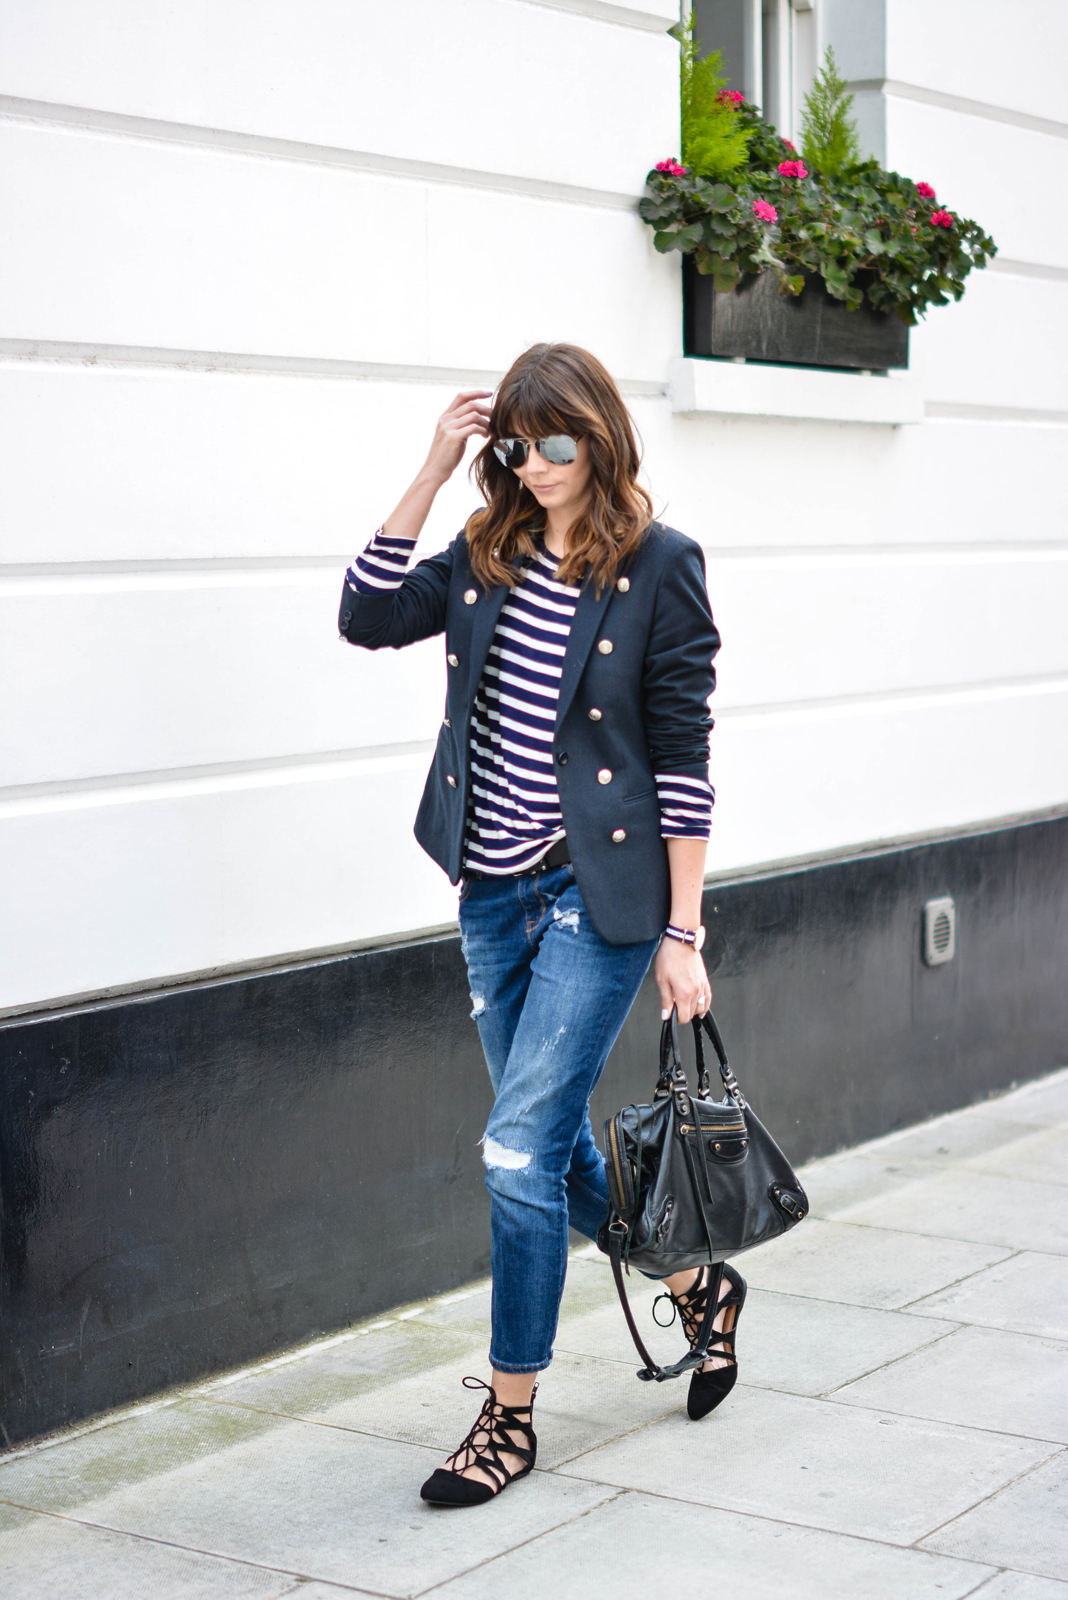 EJSTYLE - Emma Hill, Aquazzura flats dupes, Balenciaga city bag black, Ripped boyfriend jeans, breton stripe top, Superdry muse navy blazer, mirrored sunglasses, OOTD, casual weekend outfit, street style